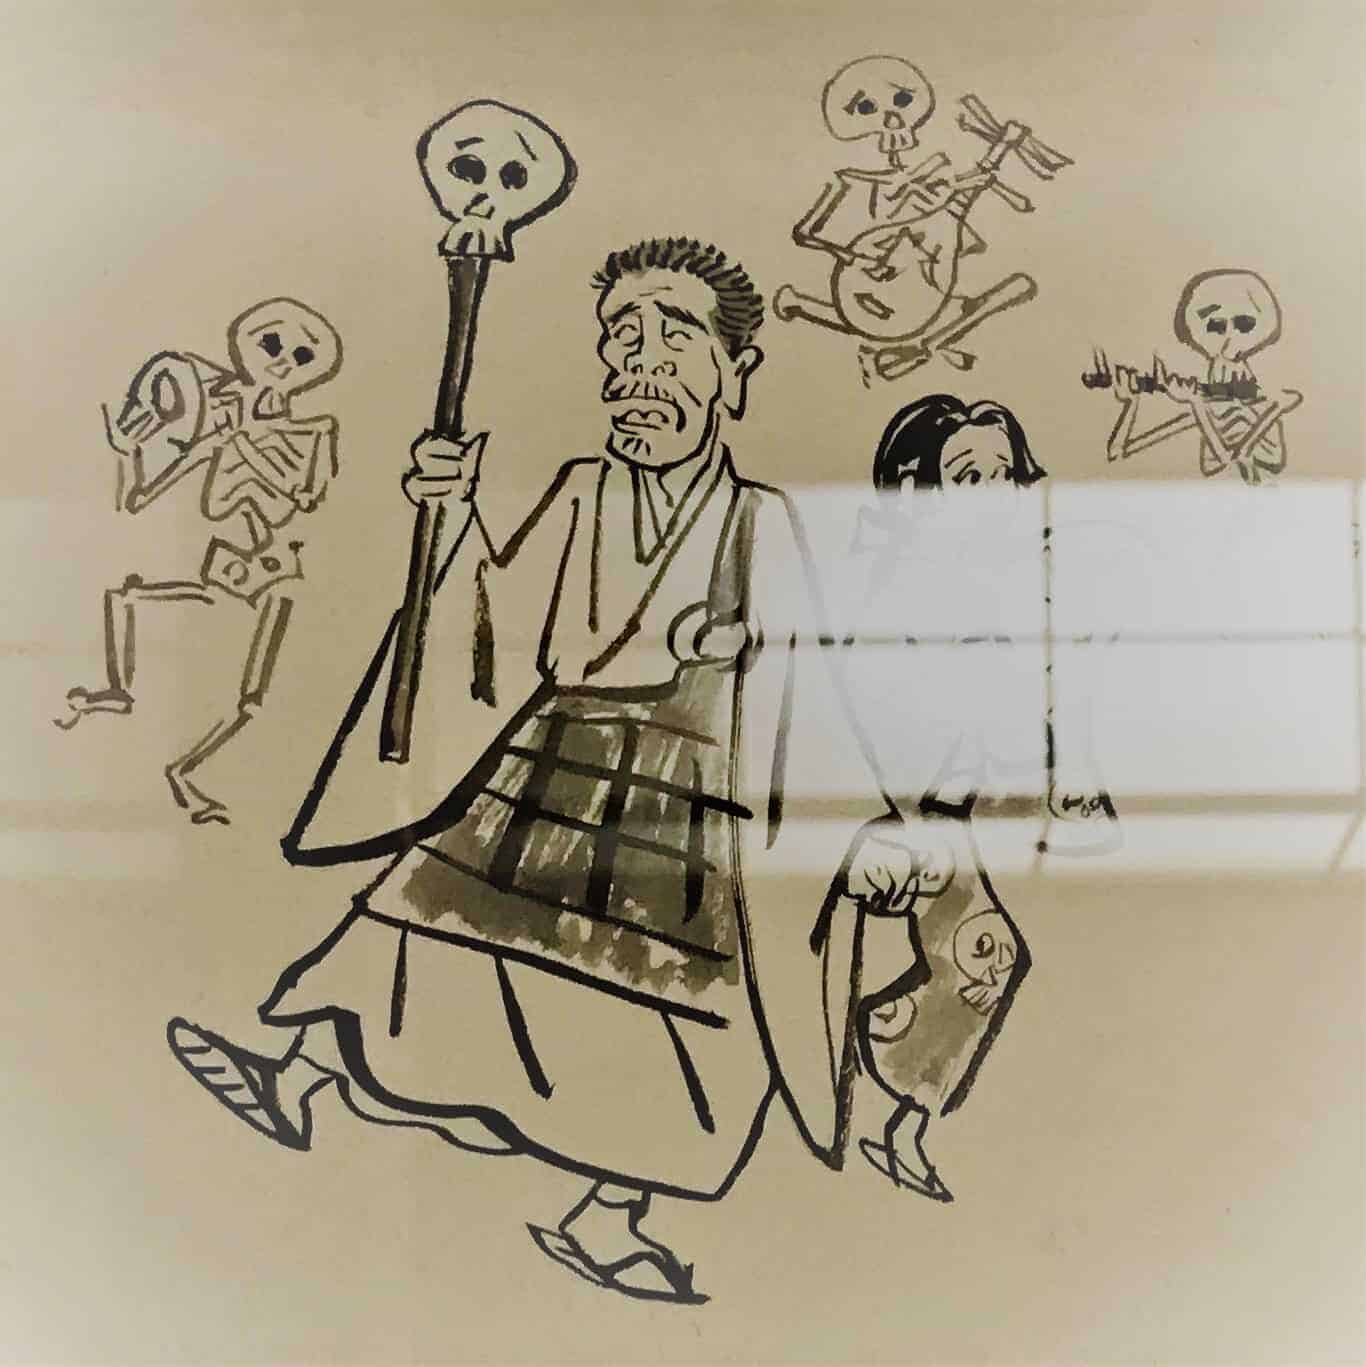 Caricature of Ikkyu dancing with skeletons